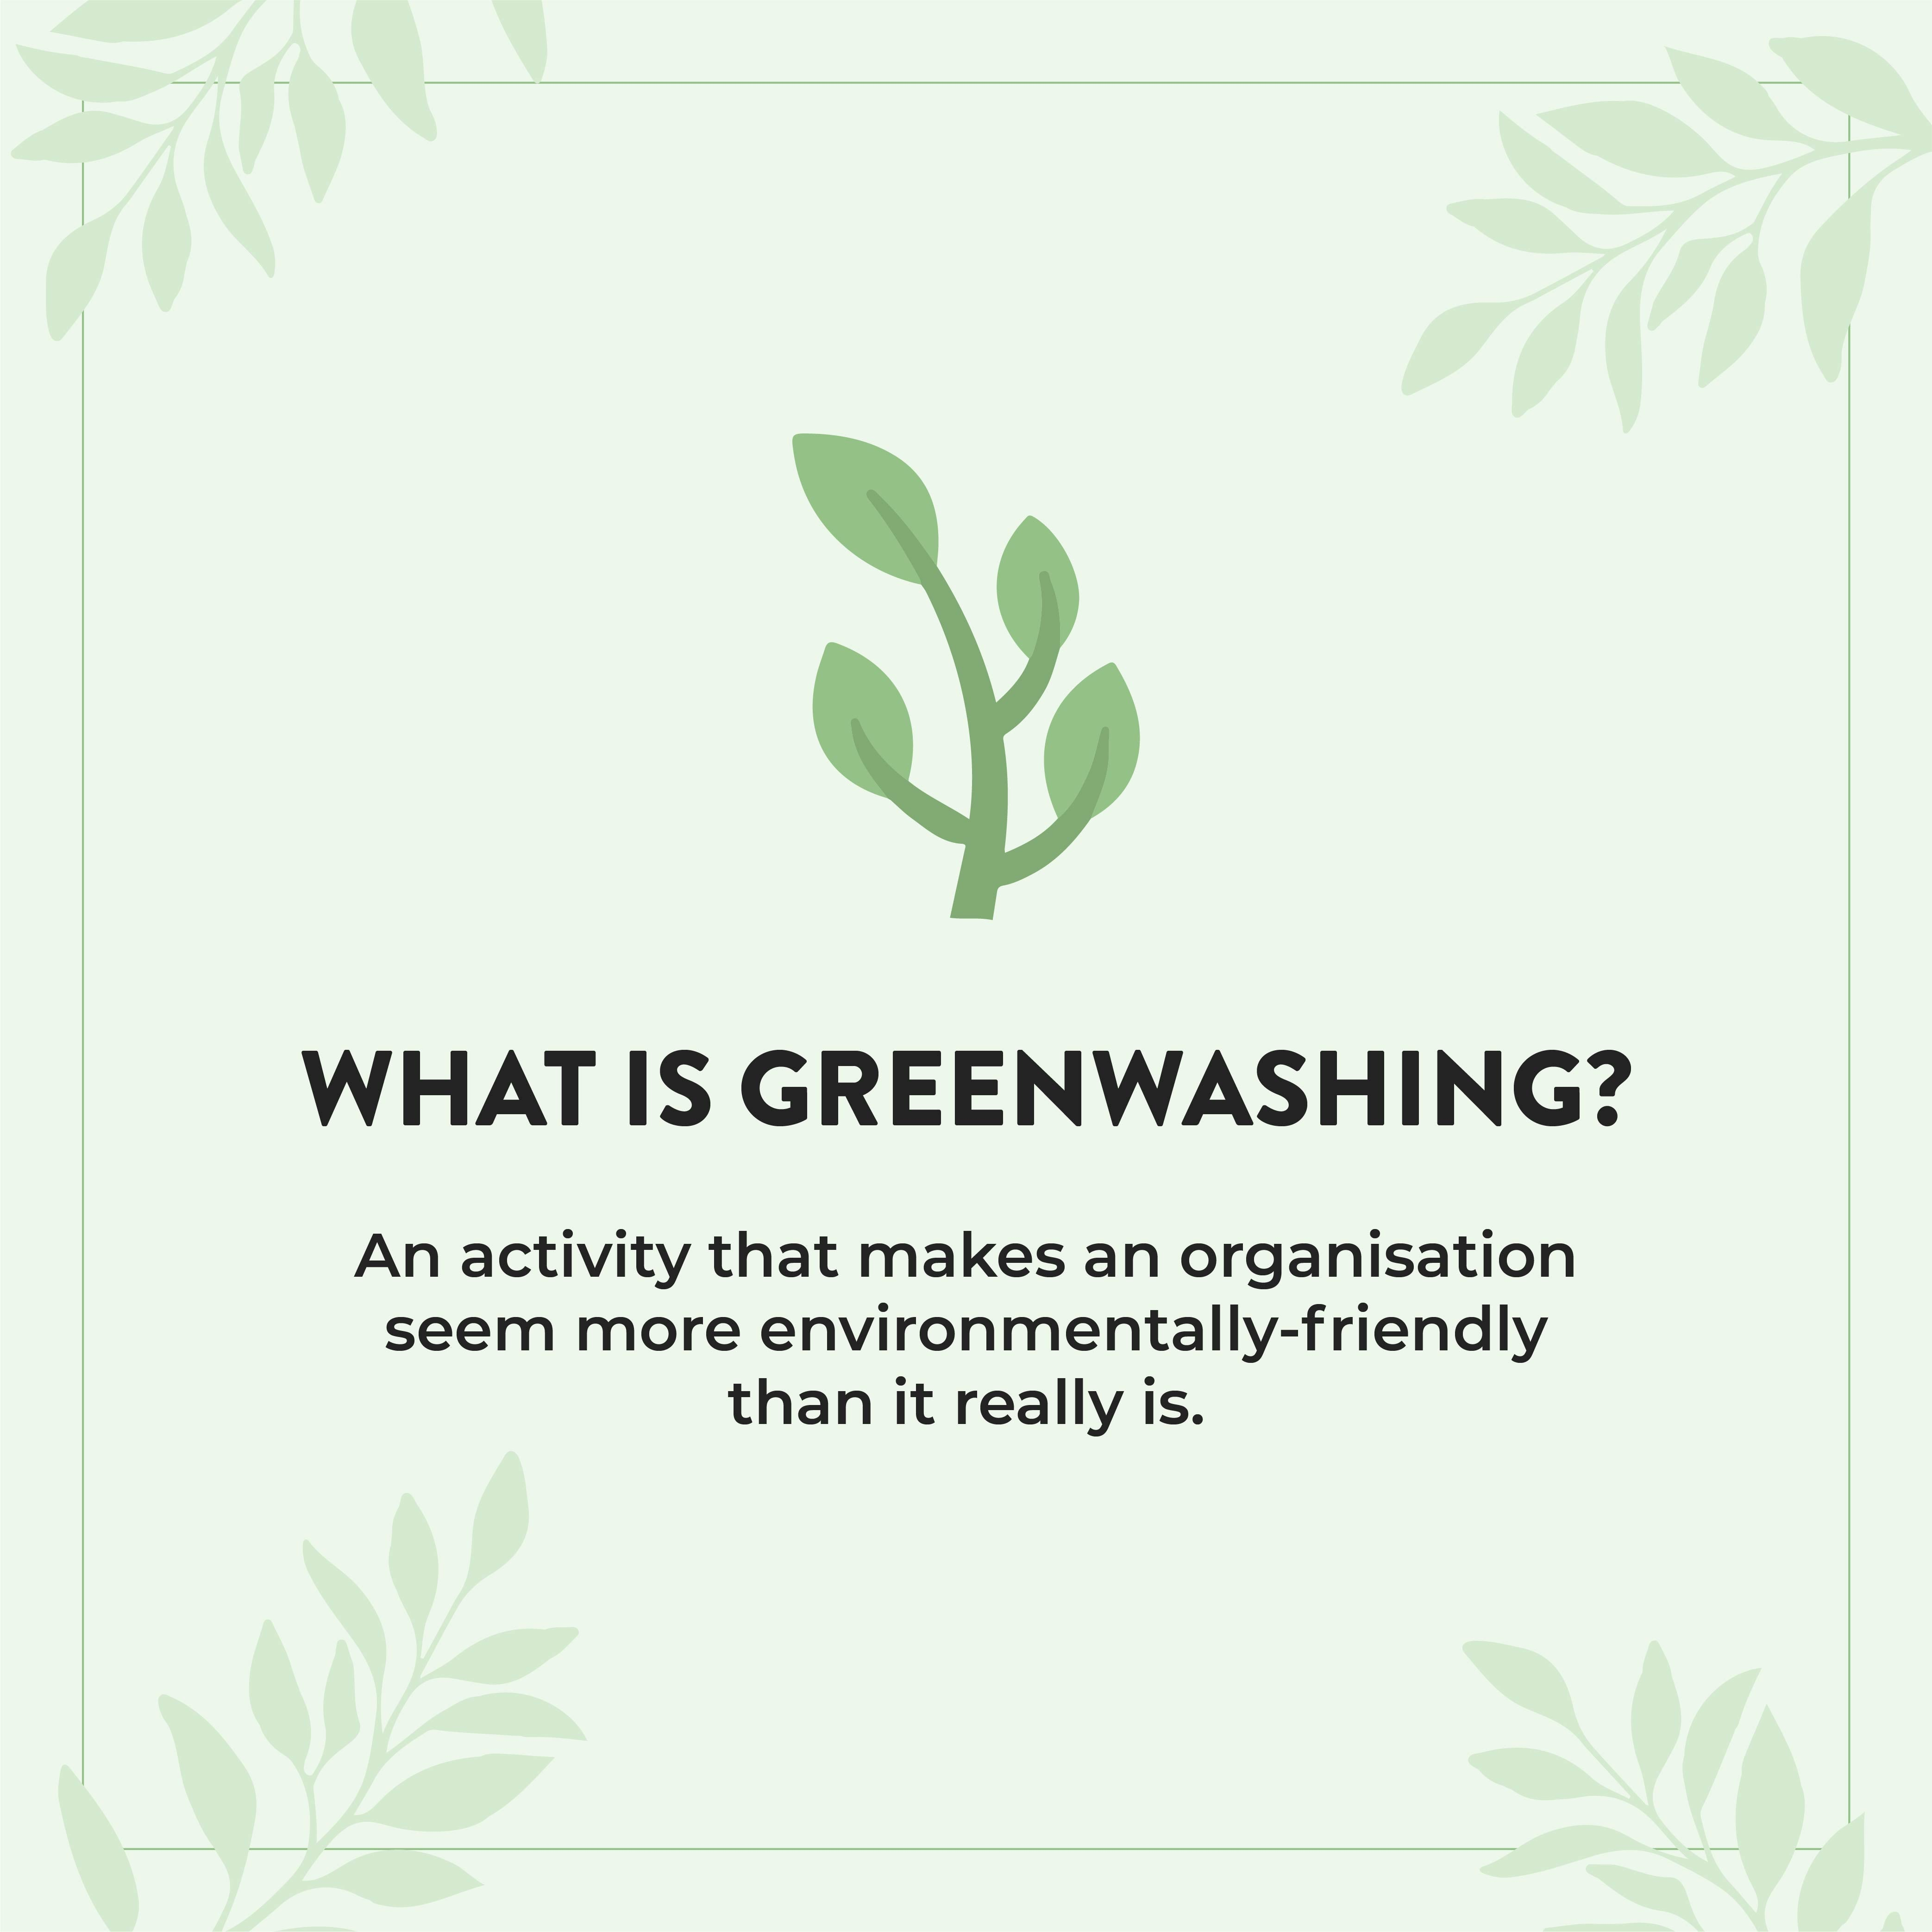 This is an image of what is greenwashing